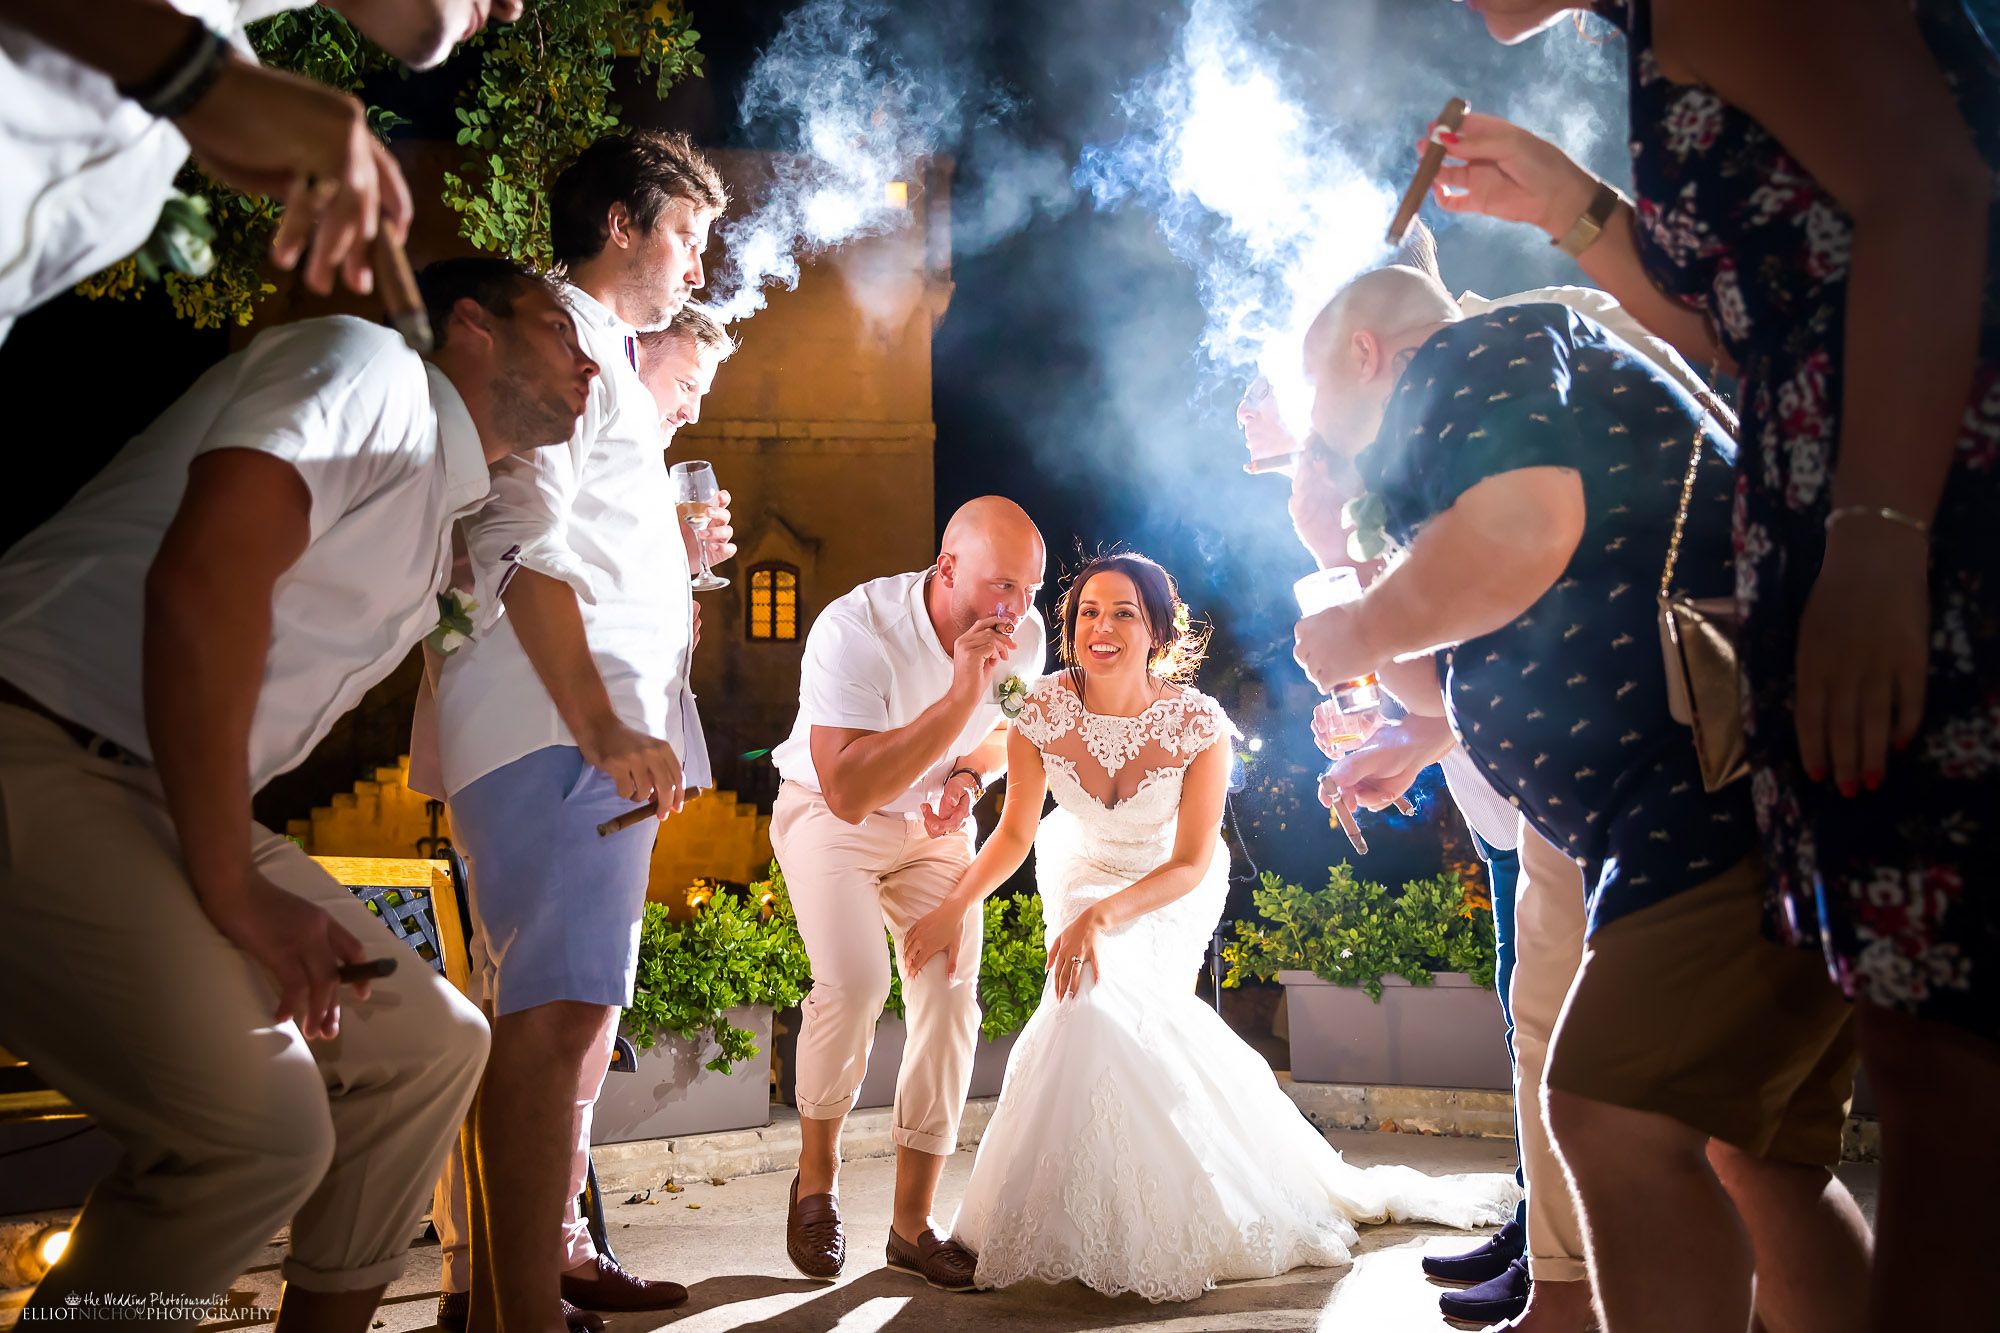 Bride and groom have some fun with their wedding guests who are smoking cigars and blow arch of smoke above them. Photo by Elliot Nichol Photography.